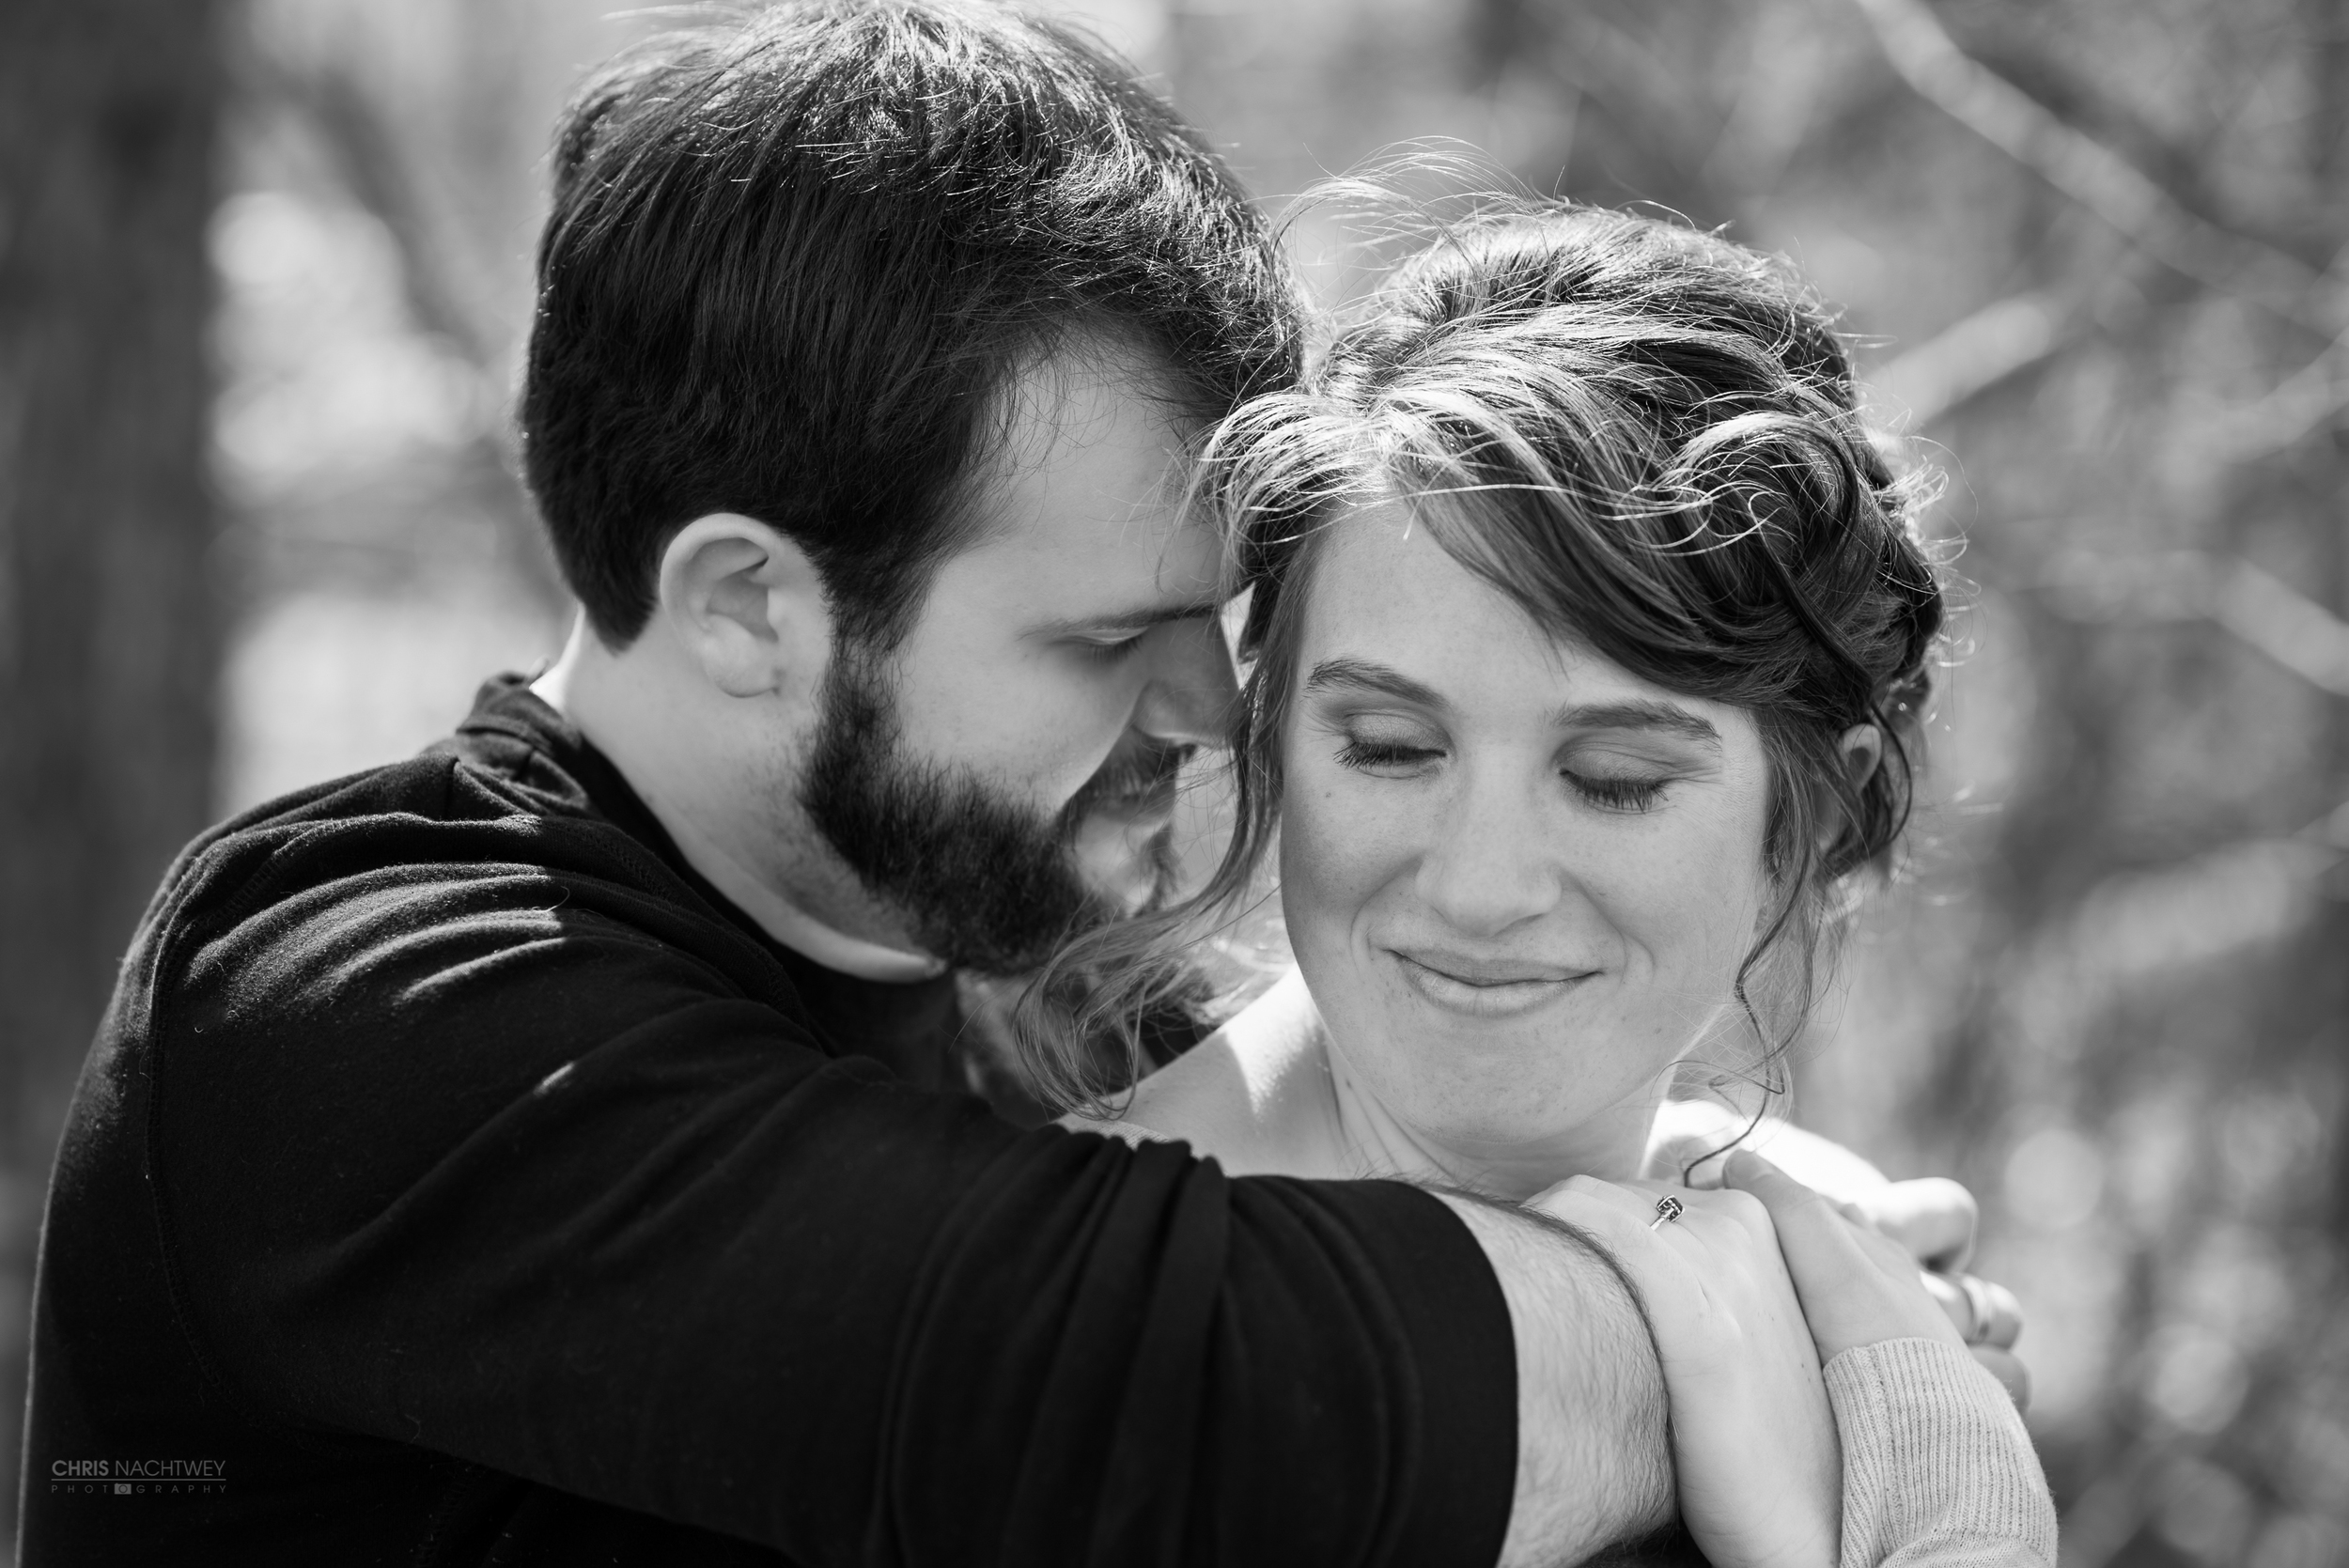 intimate-engagment-session-pictures-chris-nachtwey-photography-mystic-connecticut.jpg